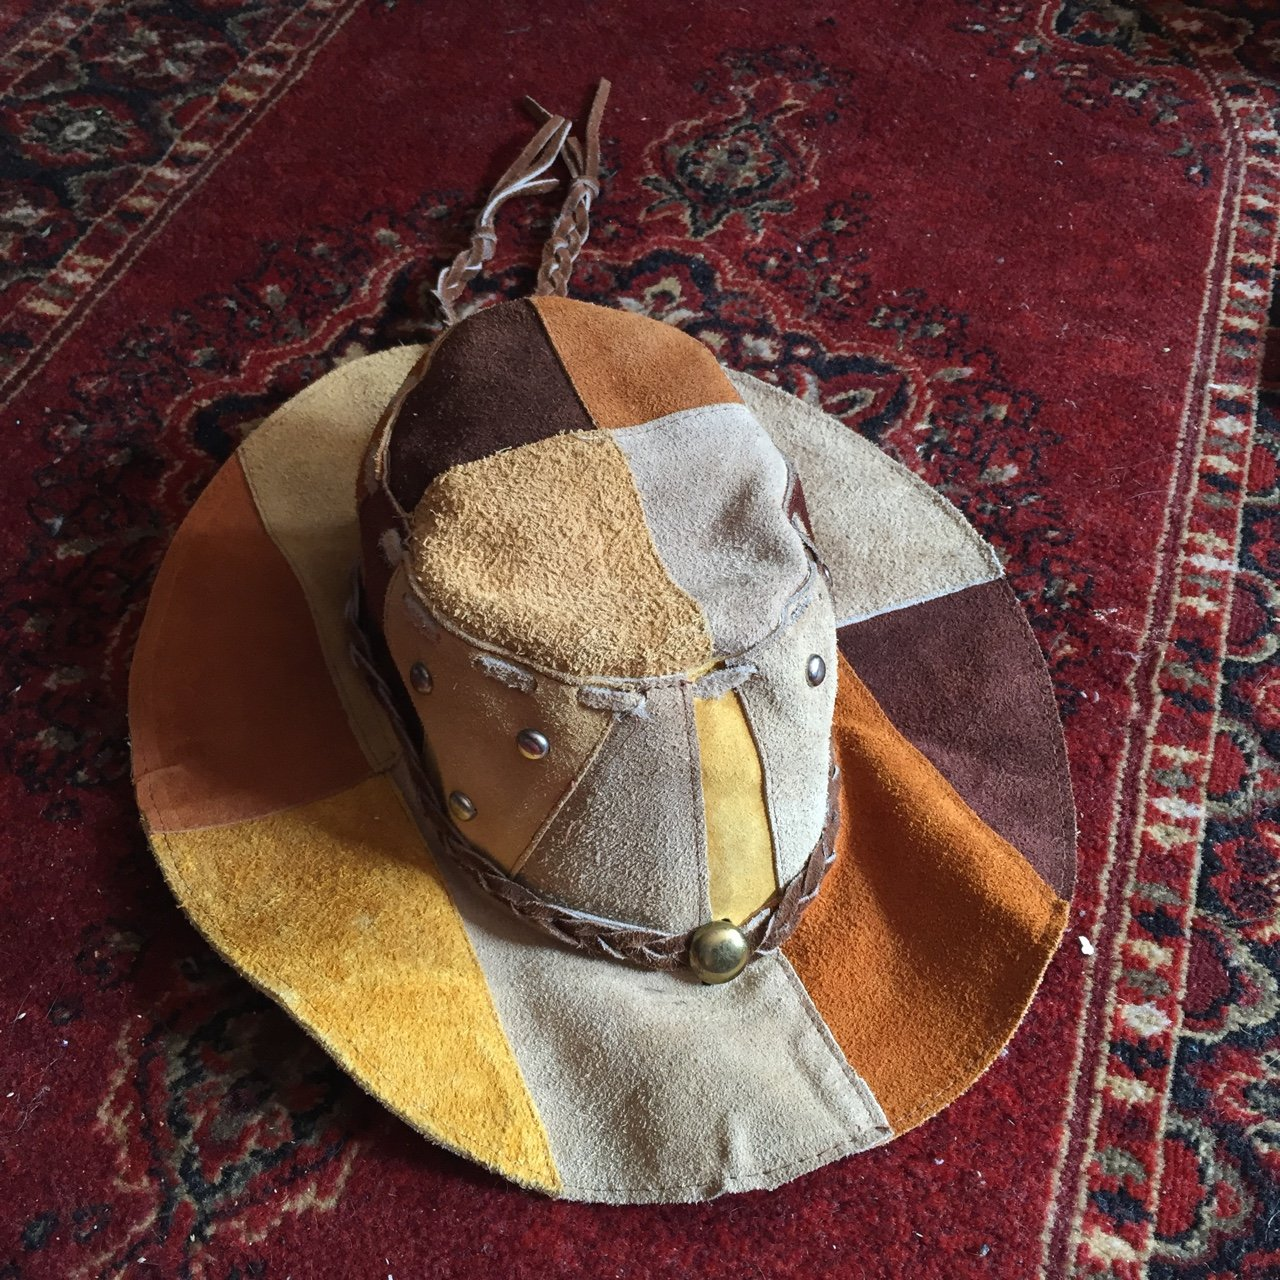 abaf11f31be Vintage 70s or 90s patchwork suede floppy hippie hat ! this - Depop